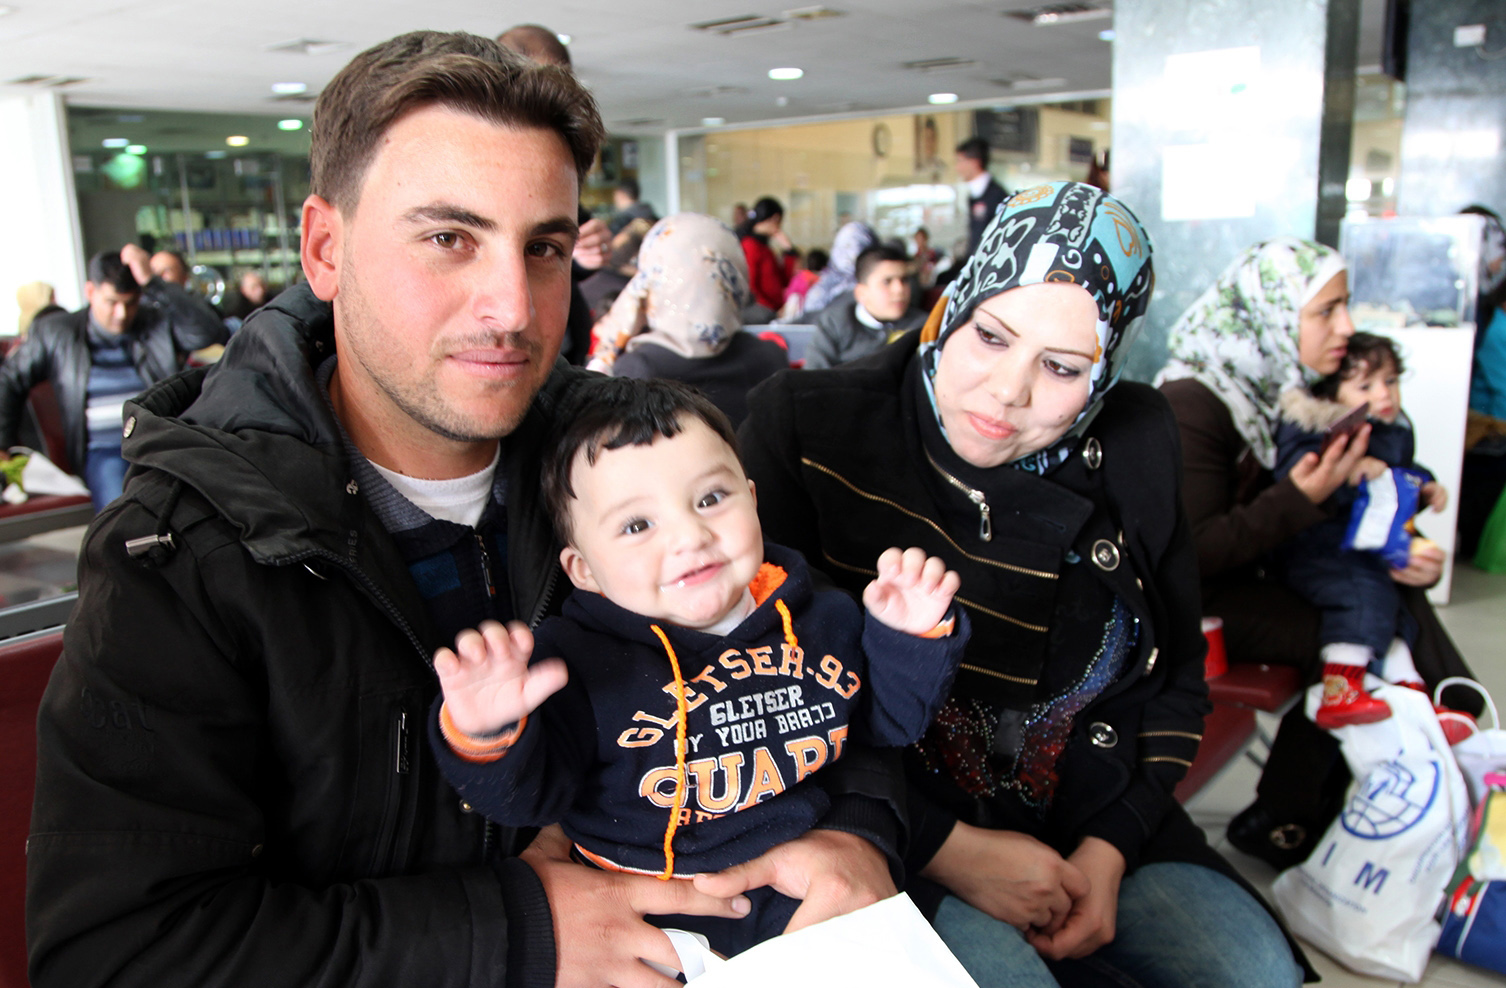 Radi poses for a photo with his son and wife while waiting in an airport in Amman, Jordan, to board a plane to Canada where they will be resettled, on Dec. 20, 2015. (AP Photo/Sam McNeil)